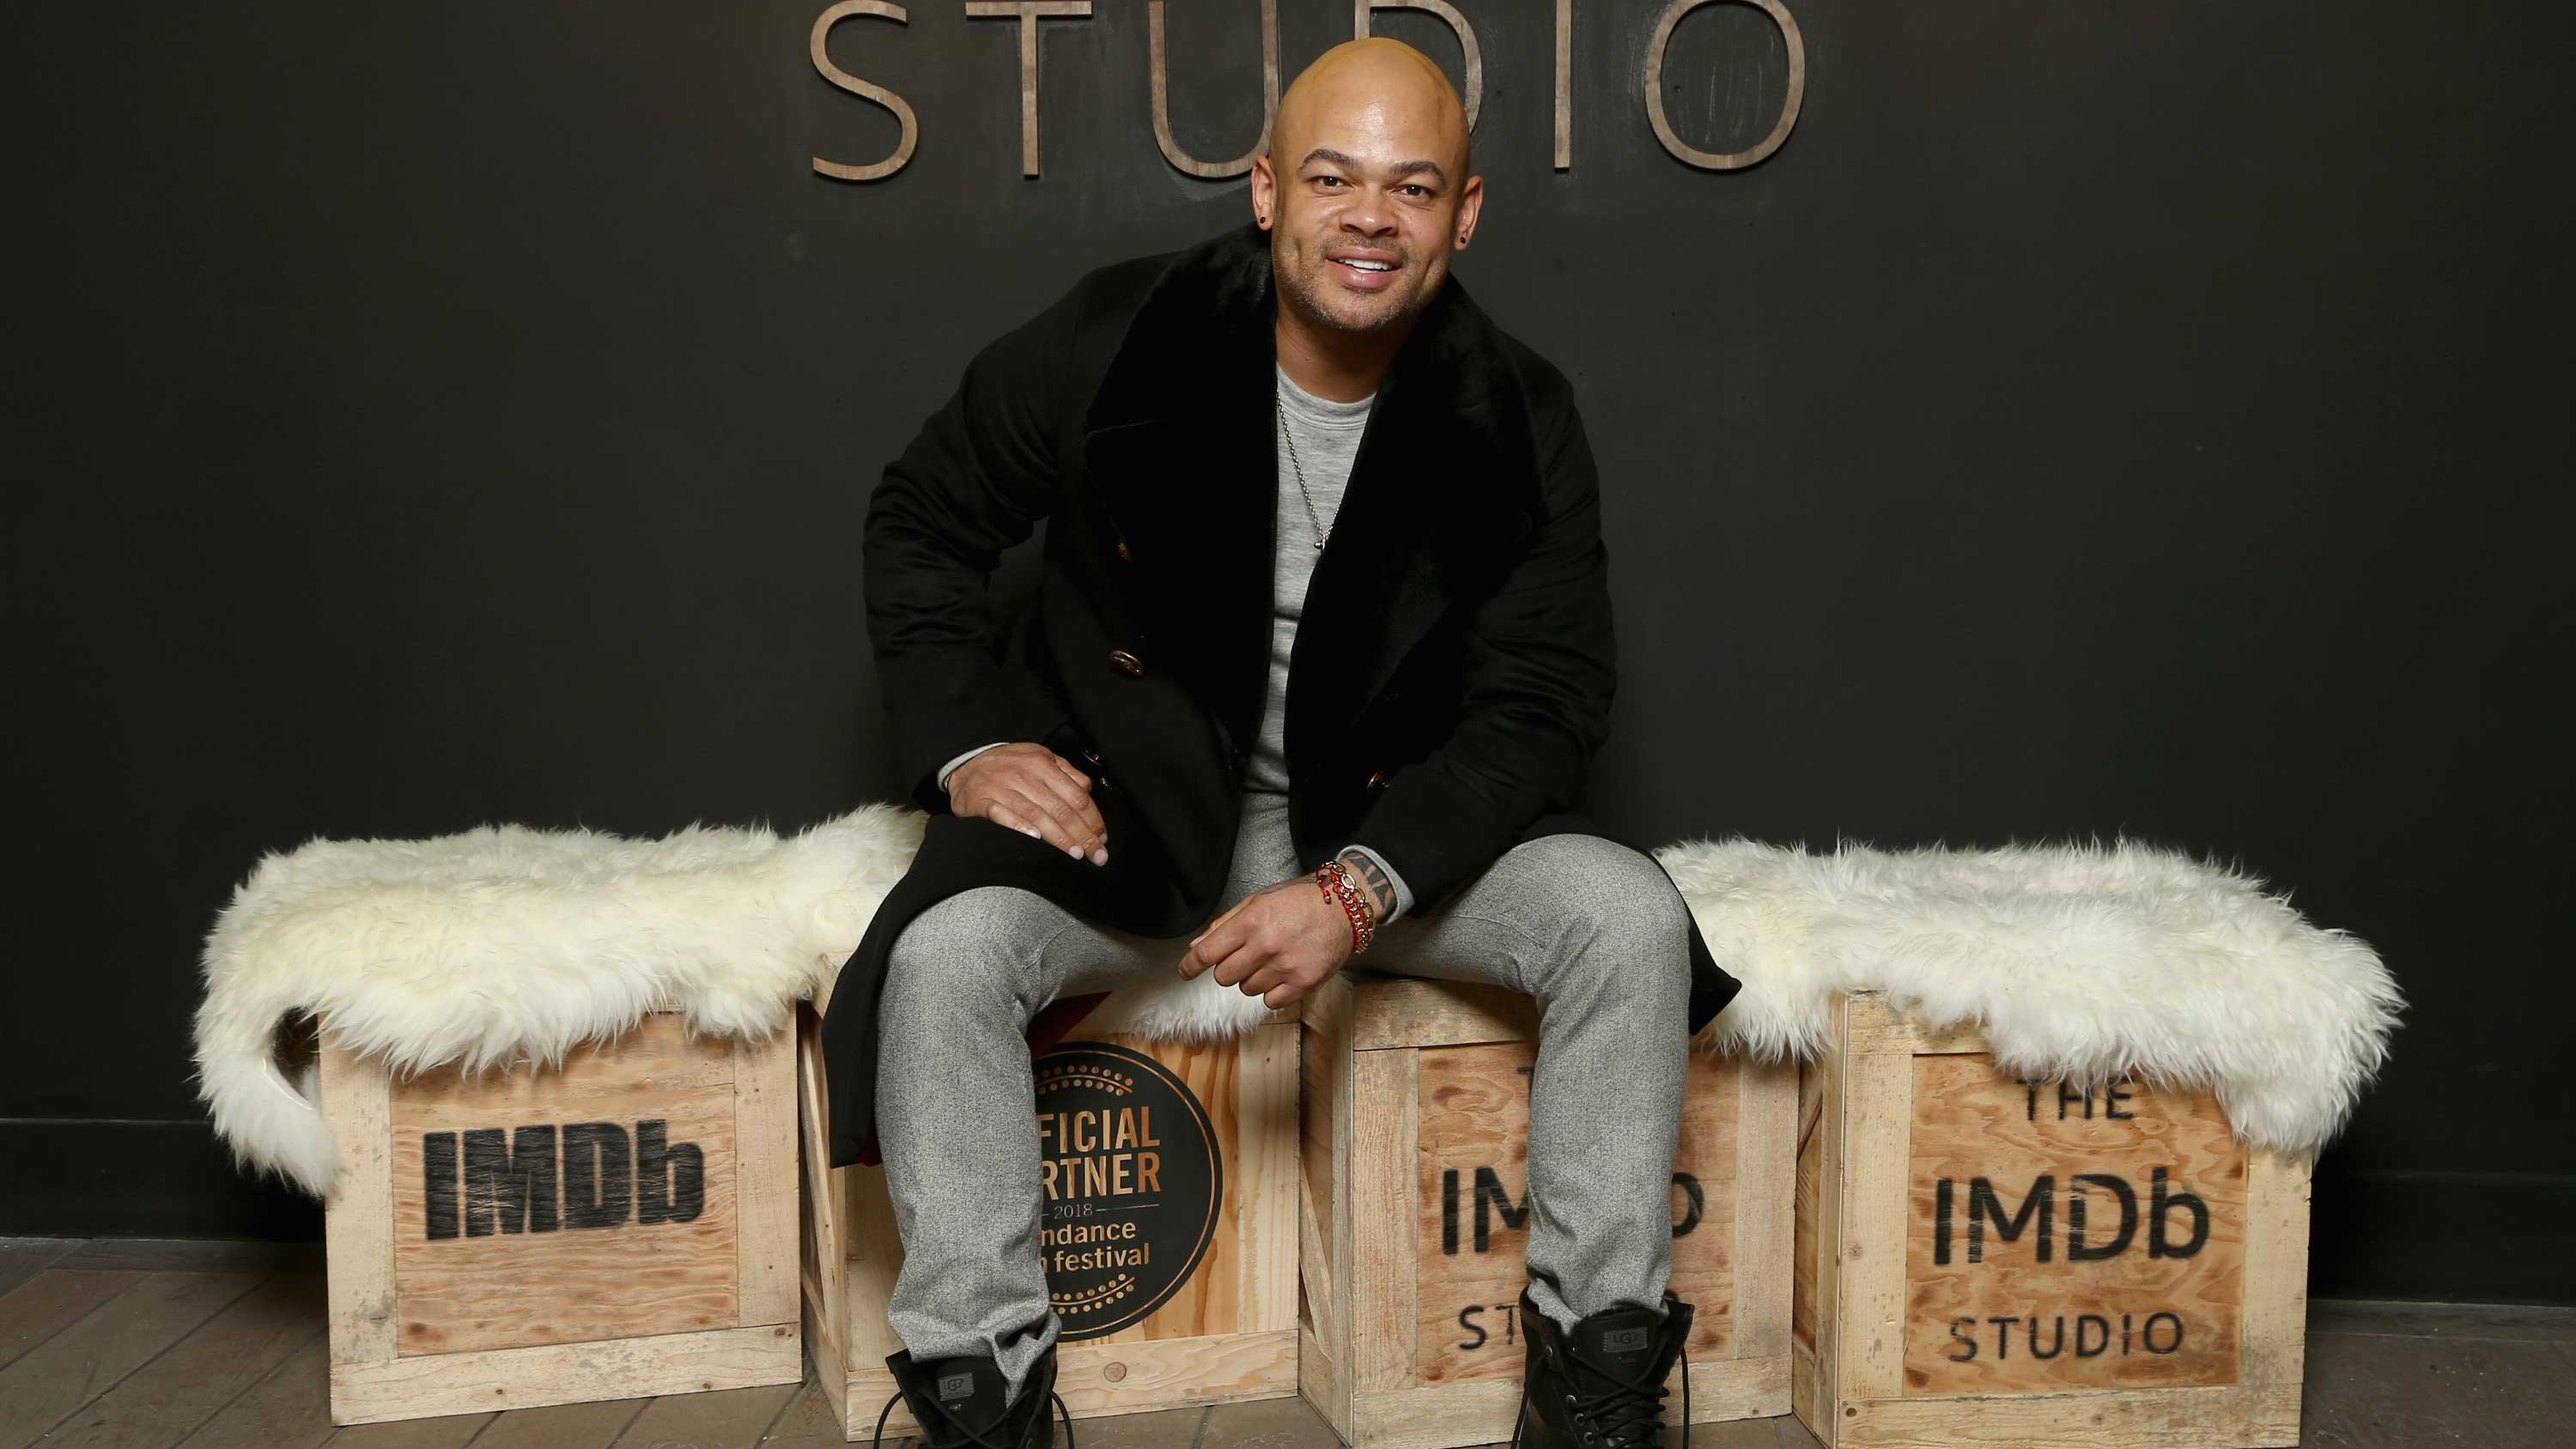 The IMDb Studio At The 2018 Sundance Film Festival – Day 3